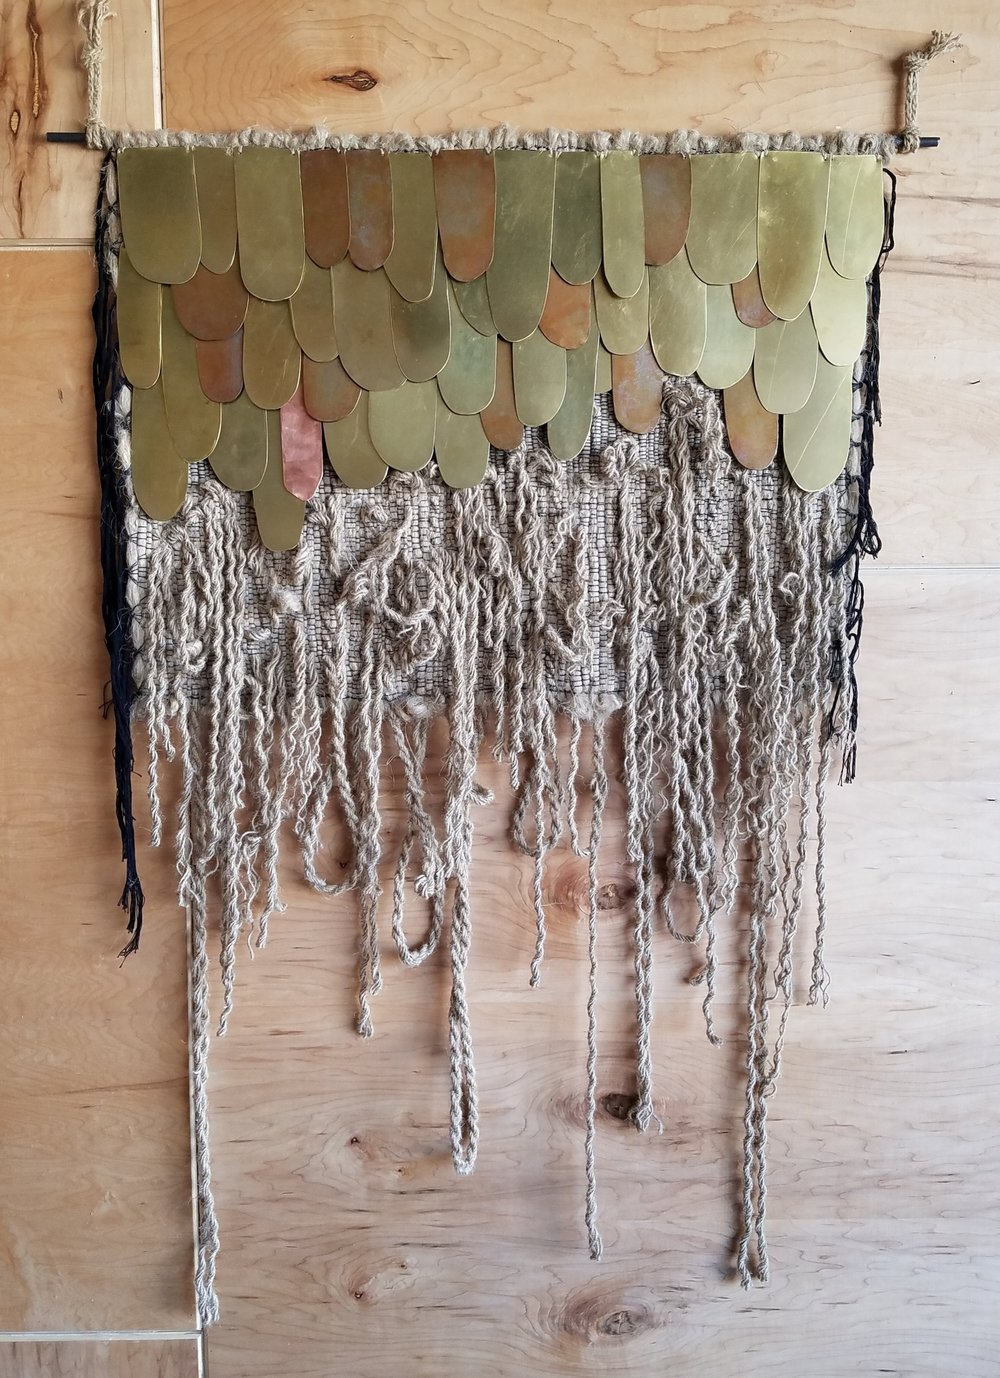 Mixed Metals Weaving